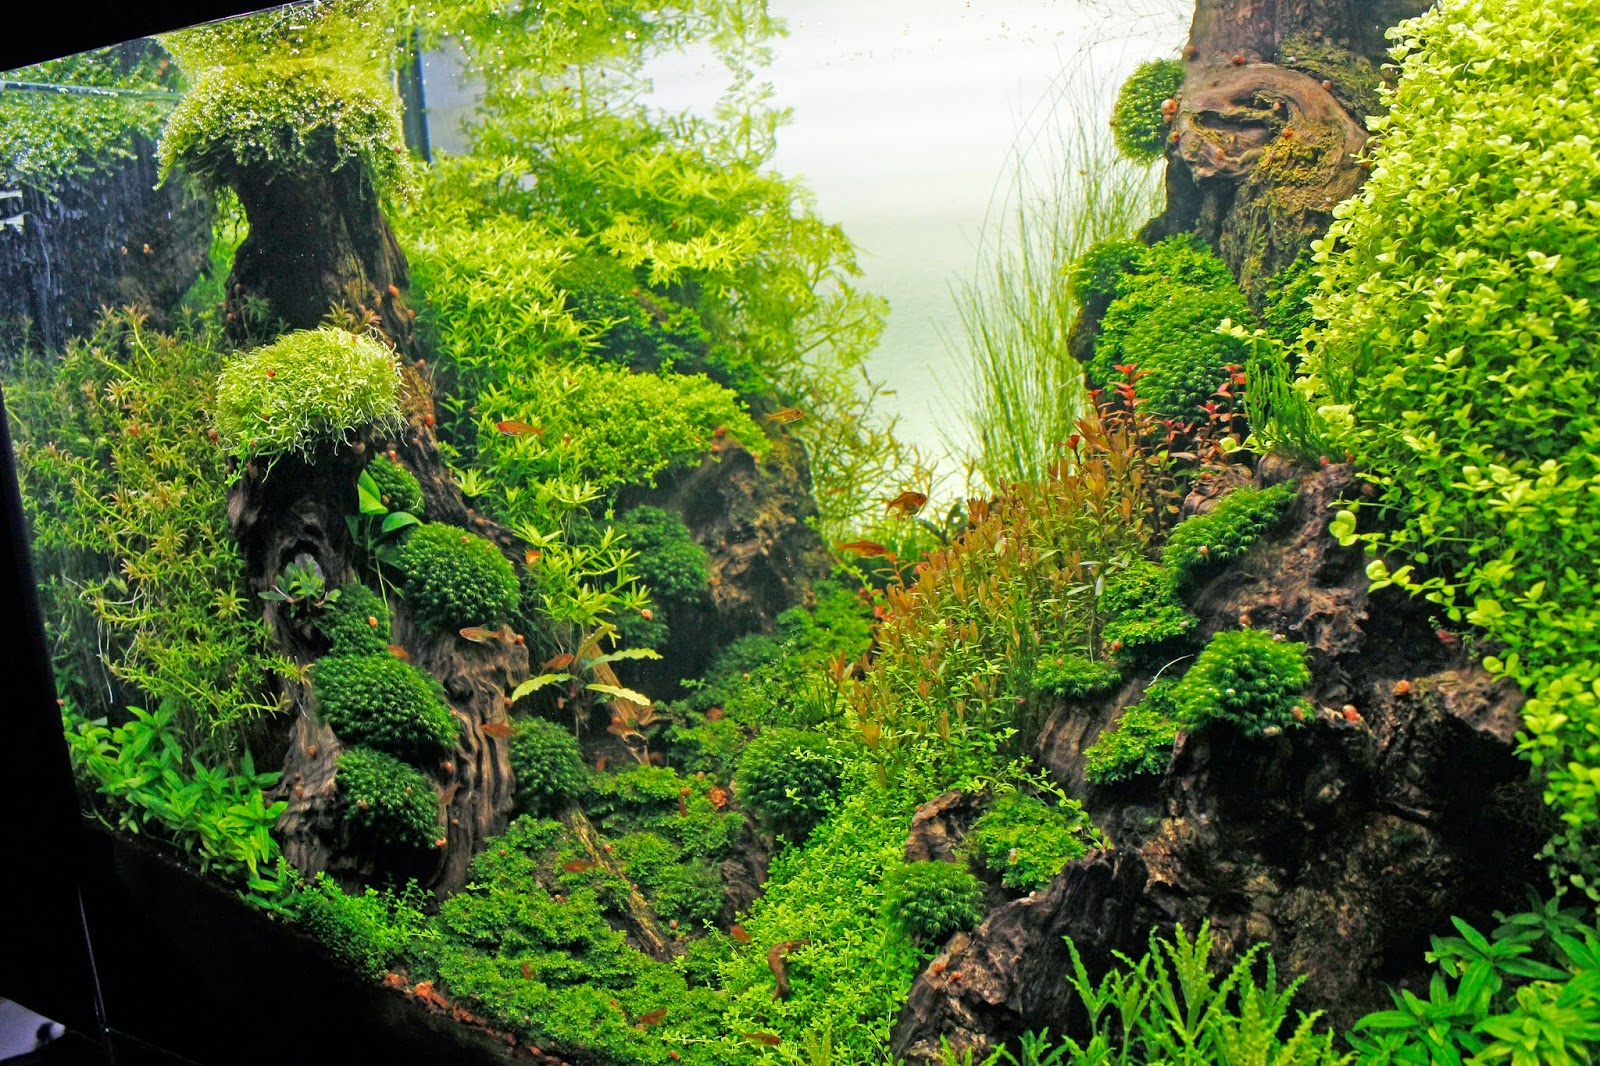 Aquascaping spain fangorn by alvaro atencia - Aquascape espana ...